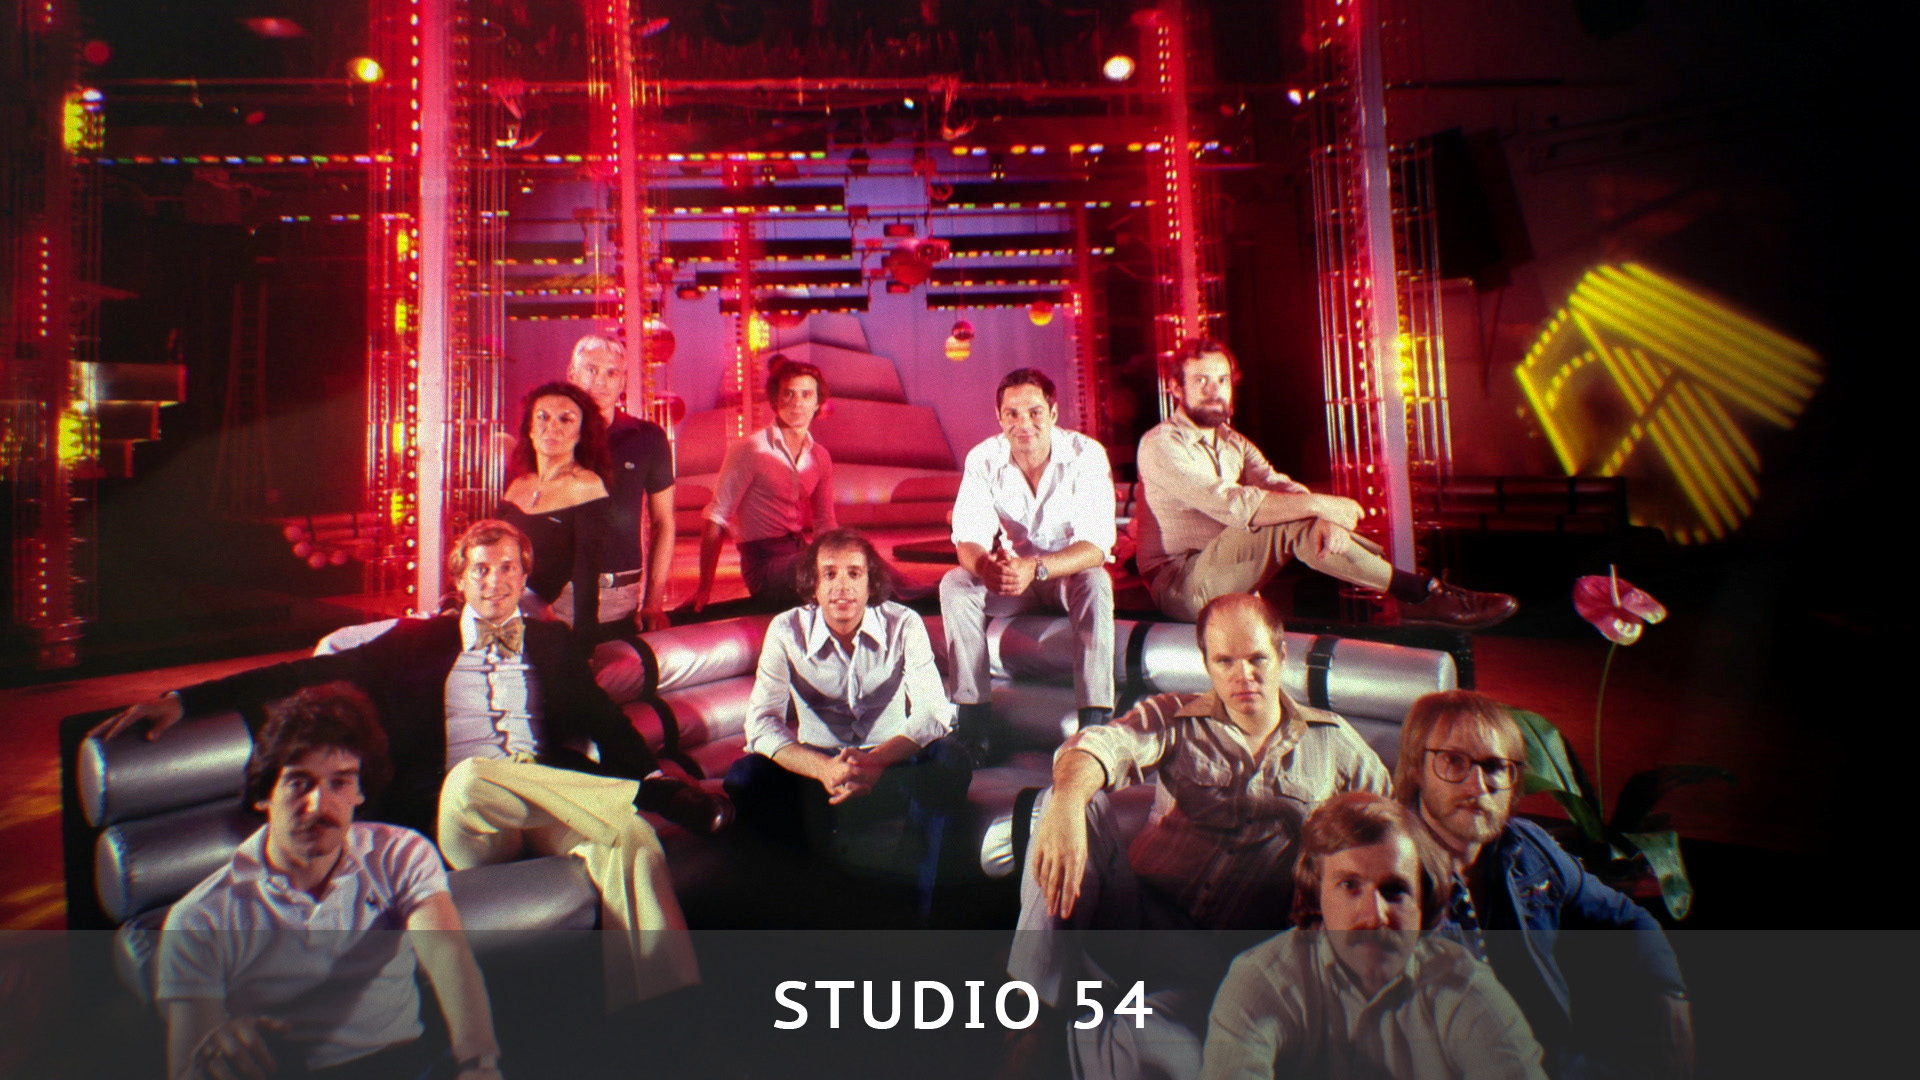 Studio 54 Documentary - Color Grading / Color Correction / Post Production